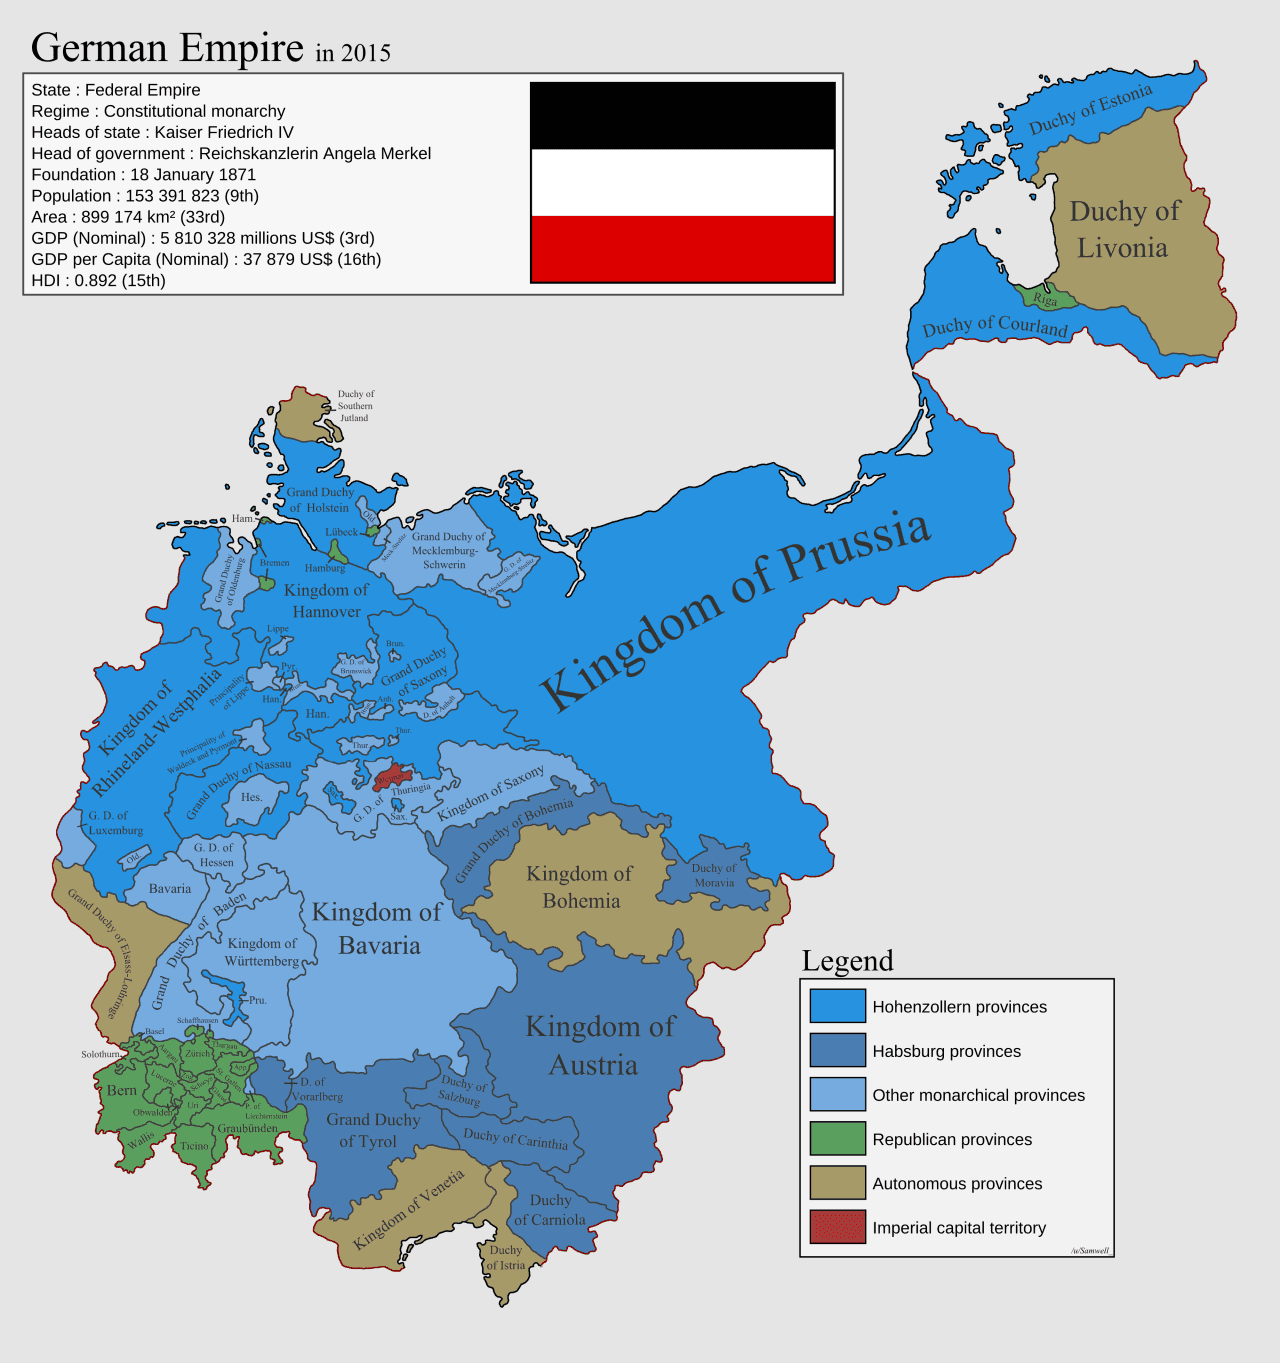 Maps On The Web A Counterfactual Map Of The German Empire In - Map 9f germany